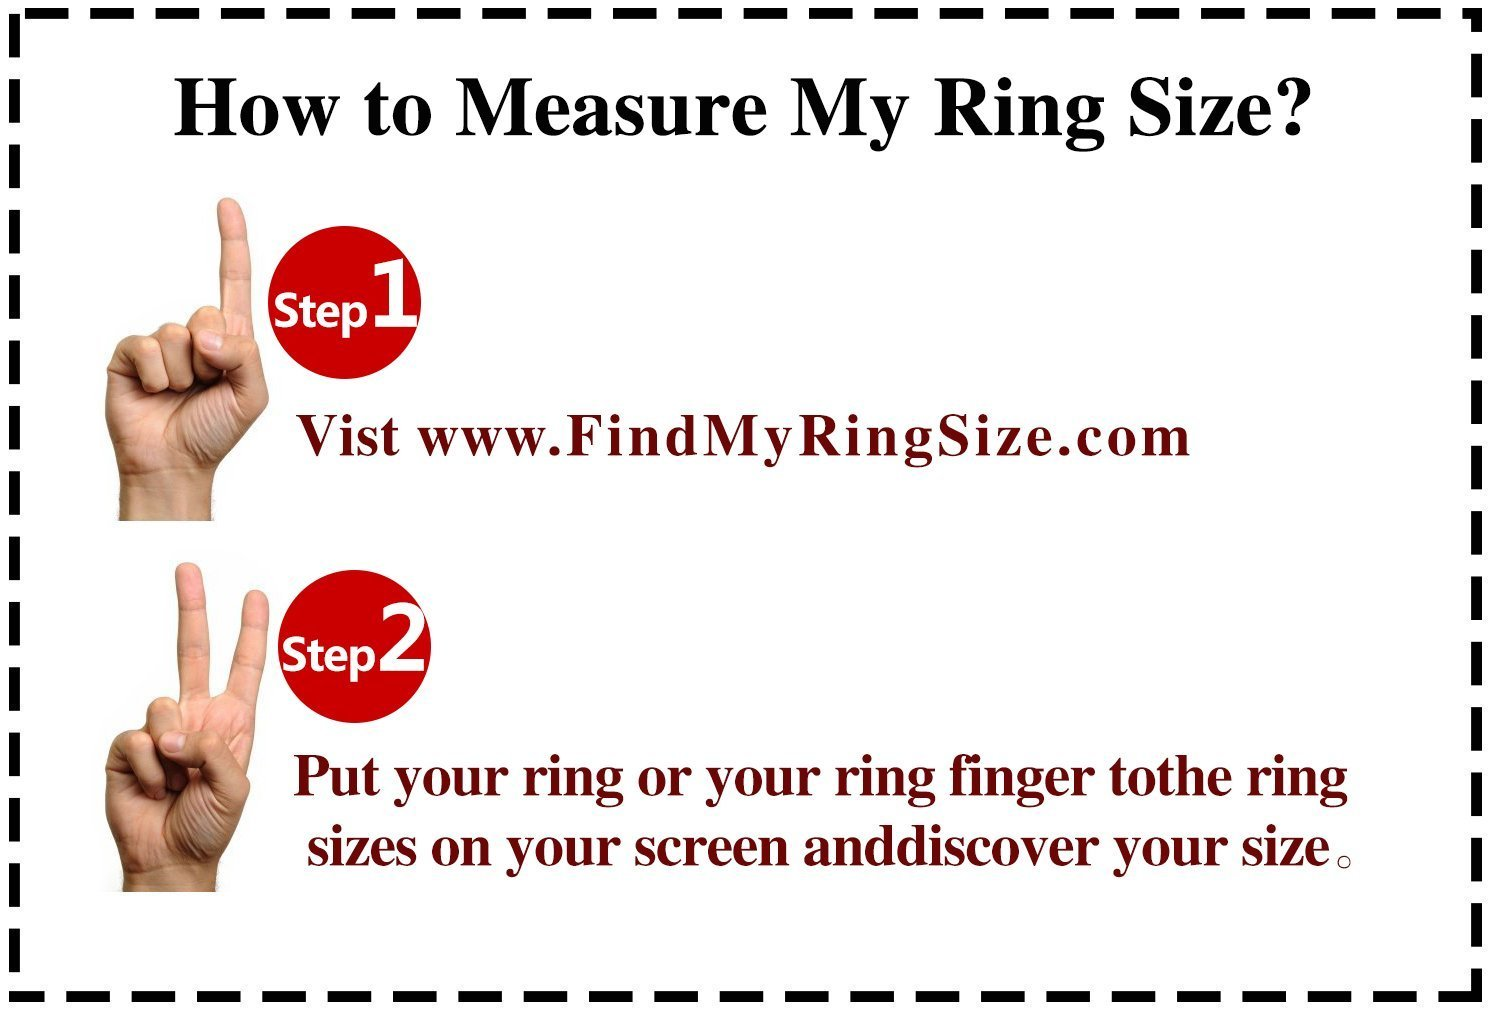 Ring sizer on screen - Amazon Com J D Men S Silicone Wedding Band Ring Black Grey Navy Blue For Athletic Active Lifestyle Sports Outdoors